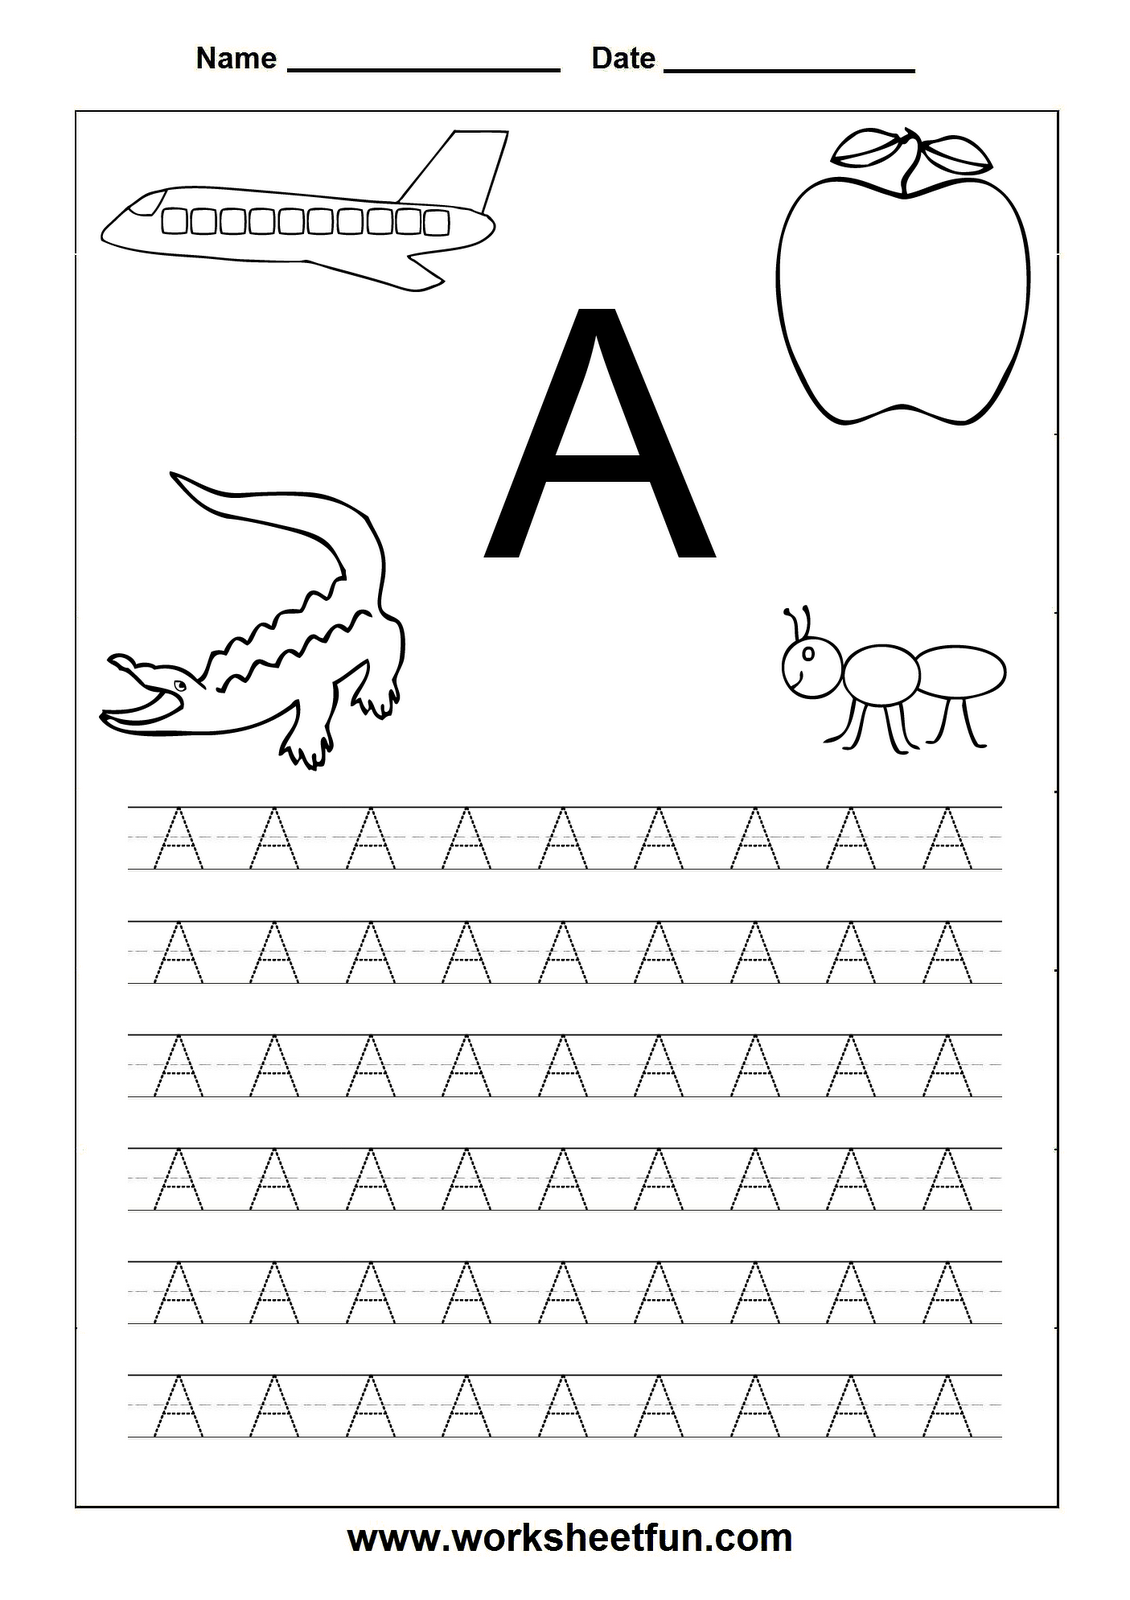 Free Worksheet Free Make Your Own Handwriting Worksheets free lowercase letter worksheets printable handwriting for kindergarten printable